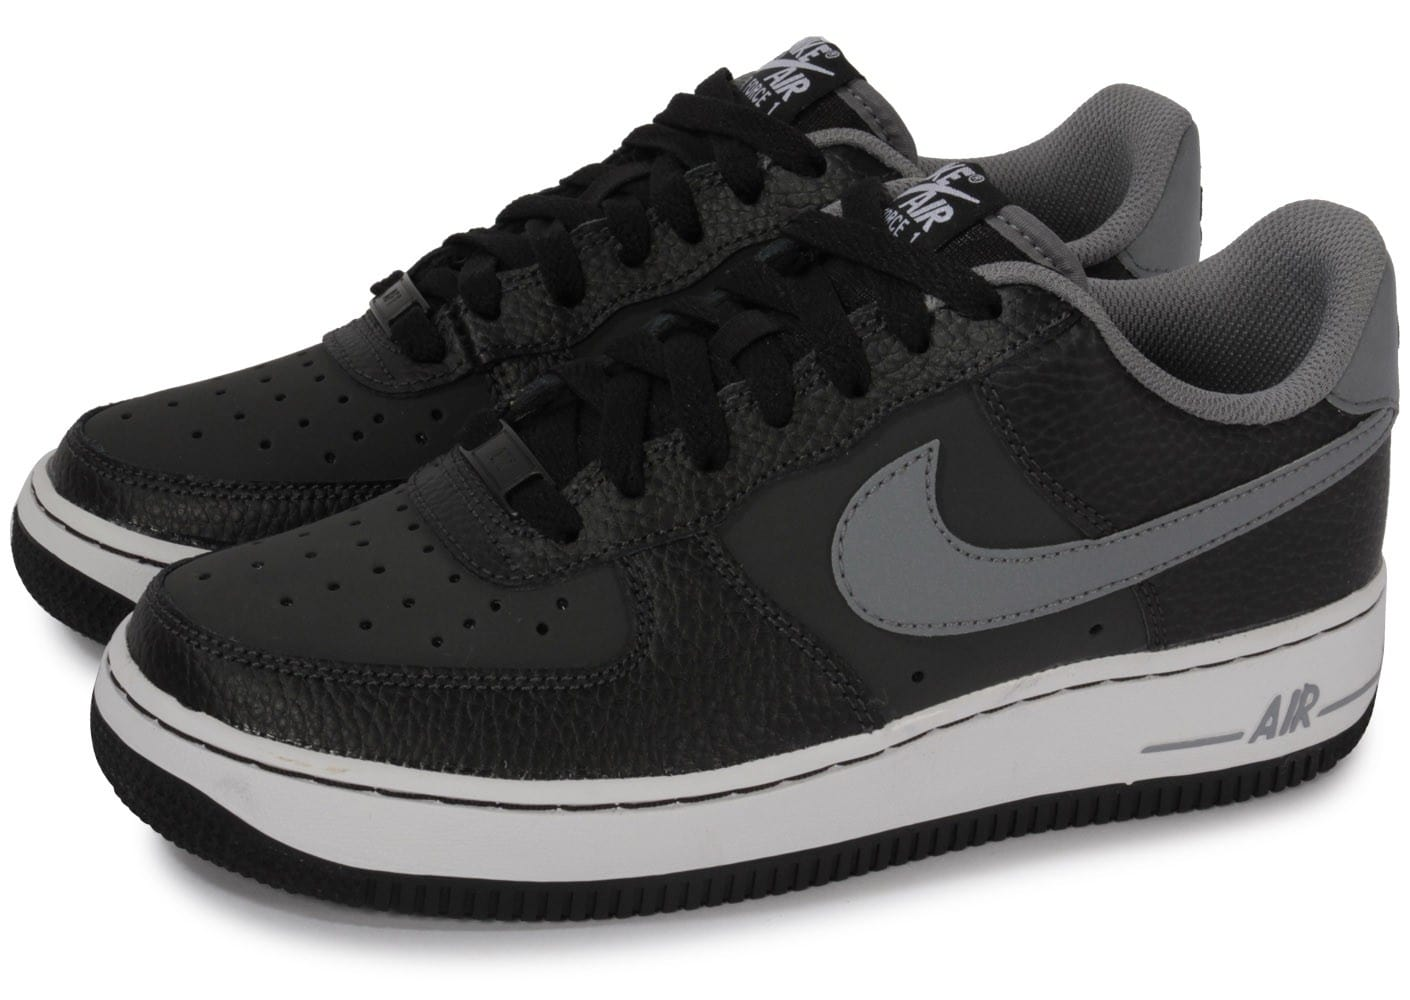 nike air force 1 noire et grise chaussures chaussures chausport. Black Bedroom Furniture Sets. Home Design Ideas